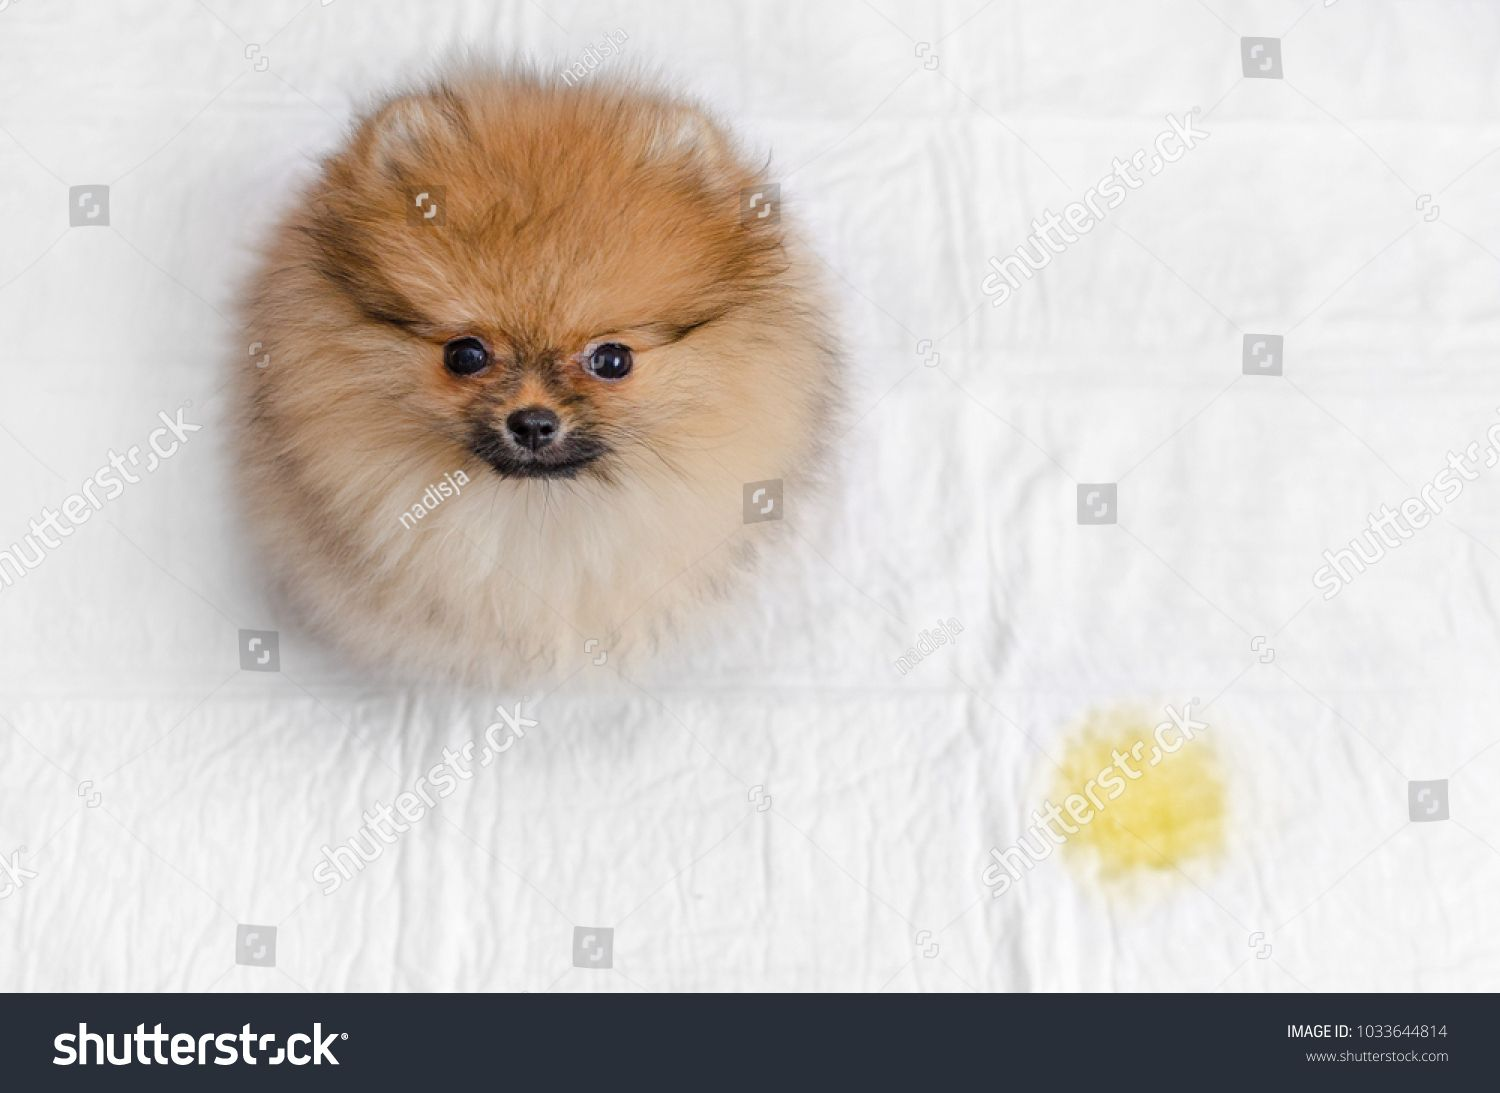 Fluffy Pomeranian Puppy And Urine Puddle View From Abovepuppy Pomeranian Fluffy View Dog Boarding Near Me Dog Tags Dog Pee